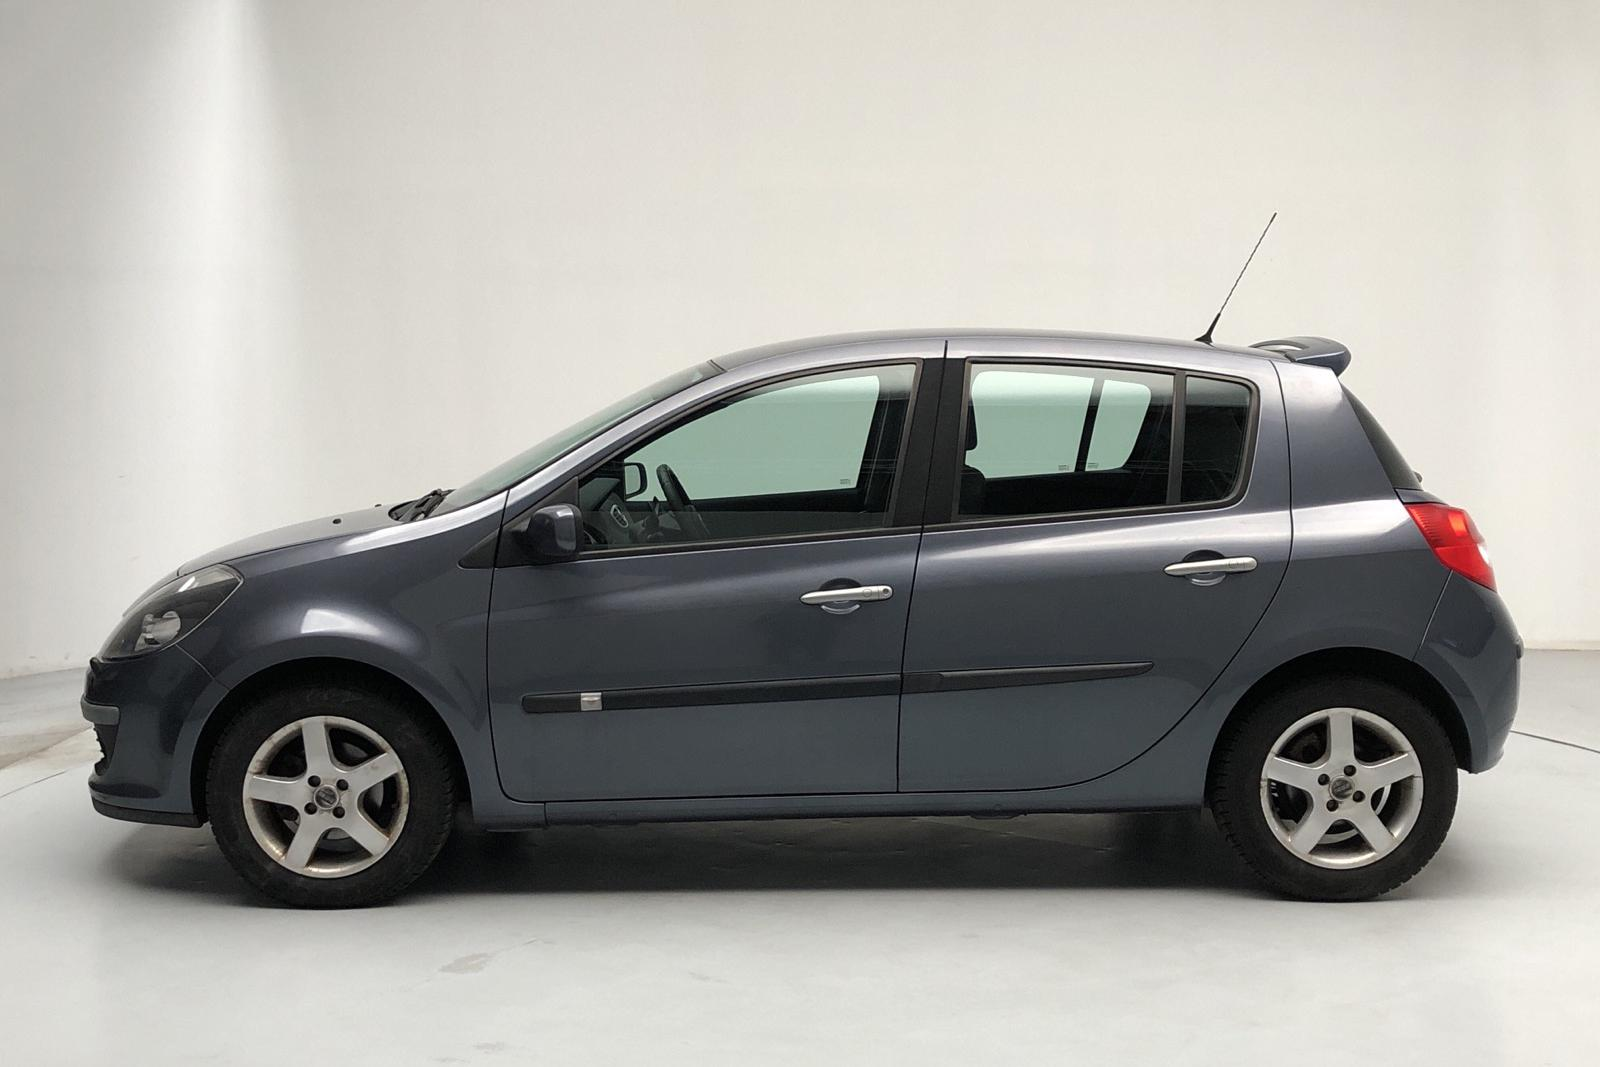 Renault Clio III 1.6 5dr (112hk) - 74 560 km - Automatic - blue - 2008